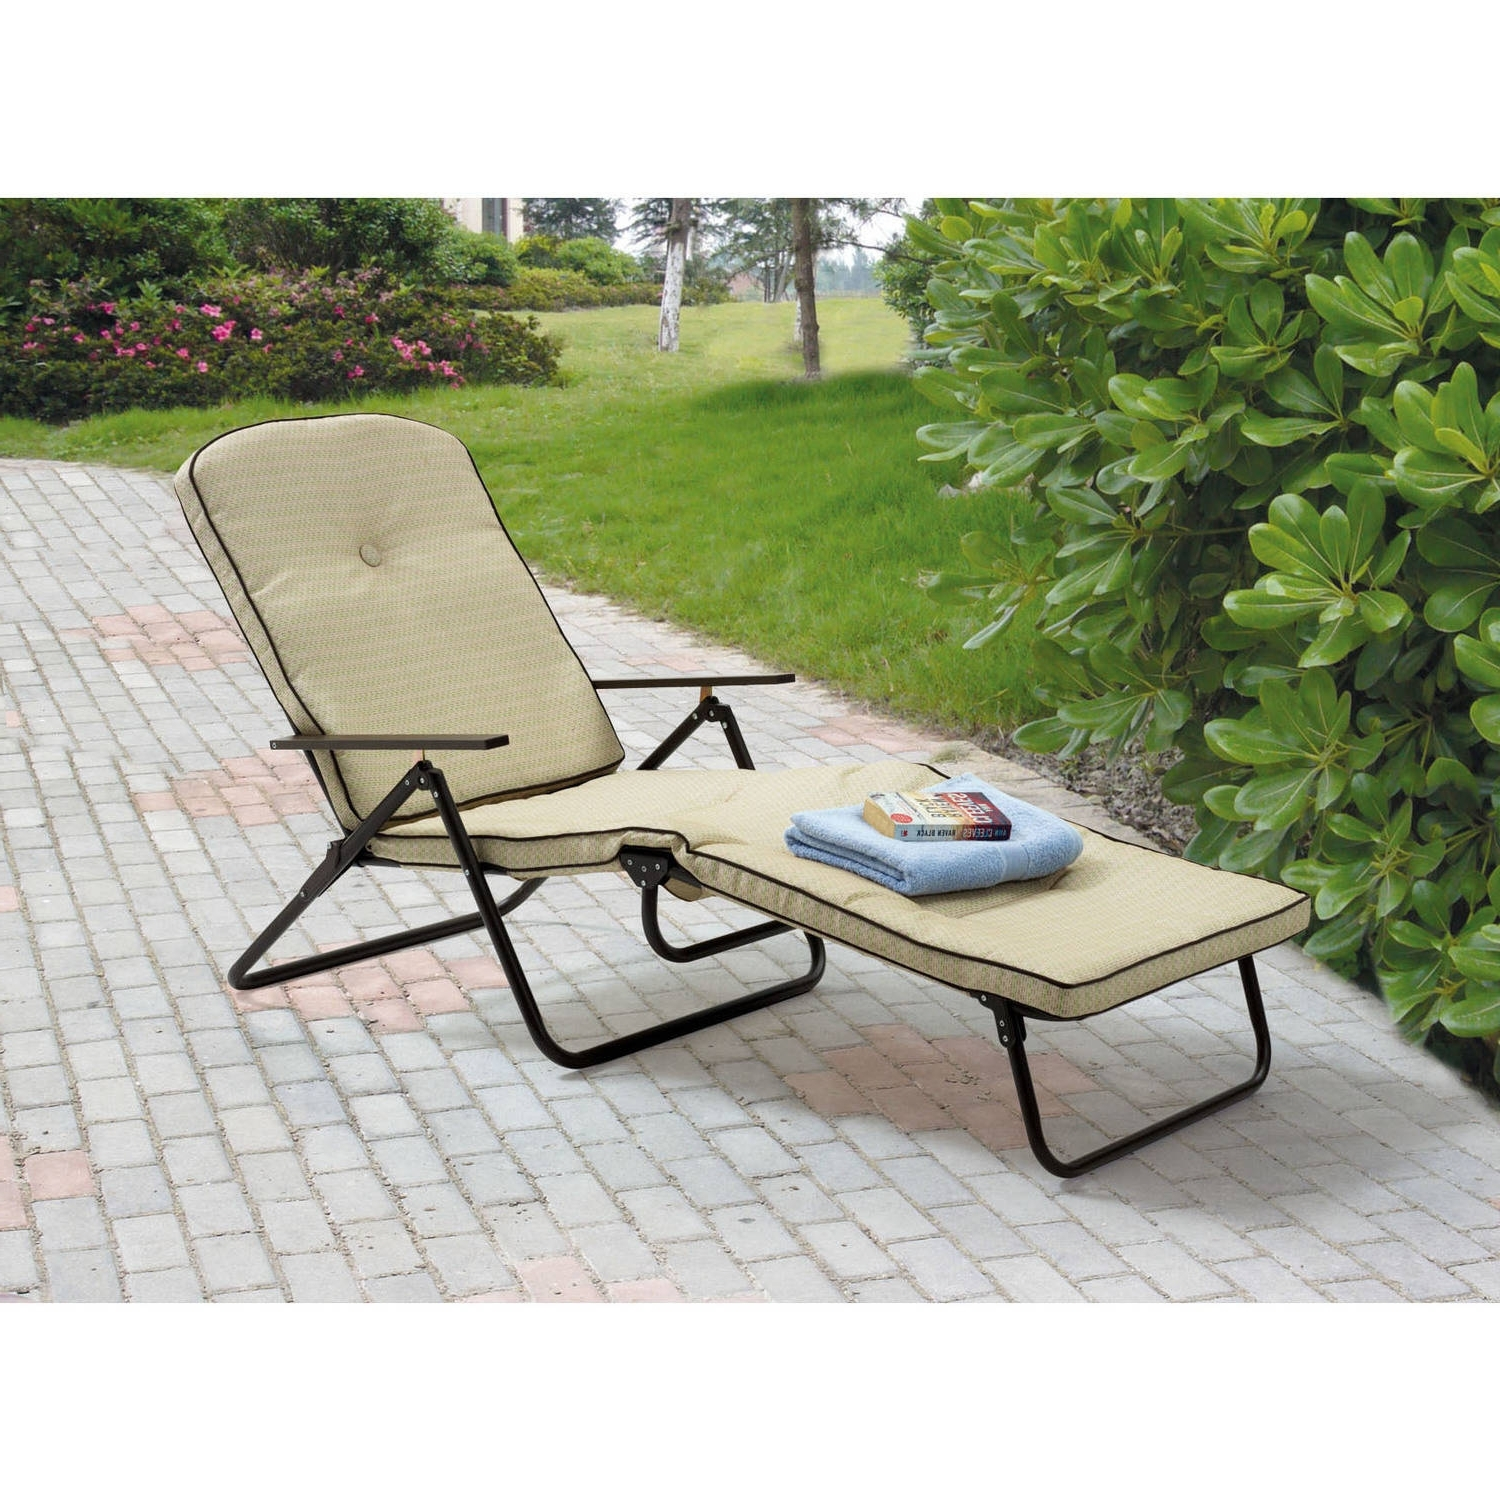 Outdoor Chaise Lounge Chairs At Walmart For 2017 Mainstays Sand Dune Outdoor Padded Folding Chaise Lounge, Tan (View 4 of 15)